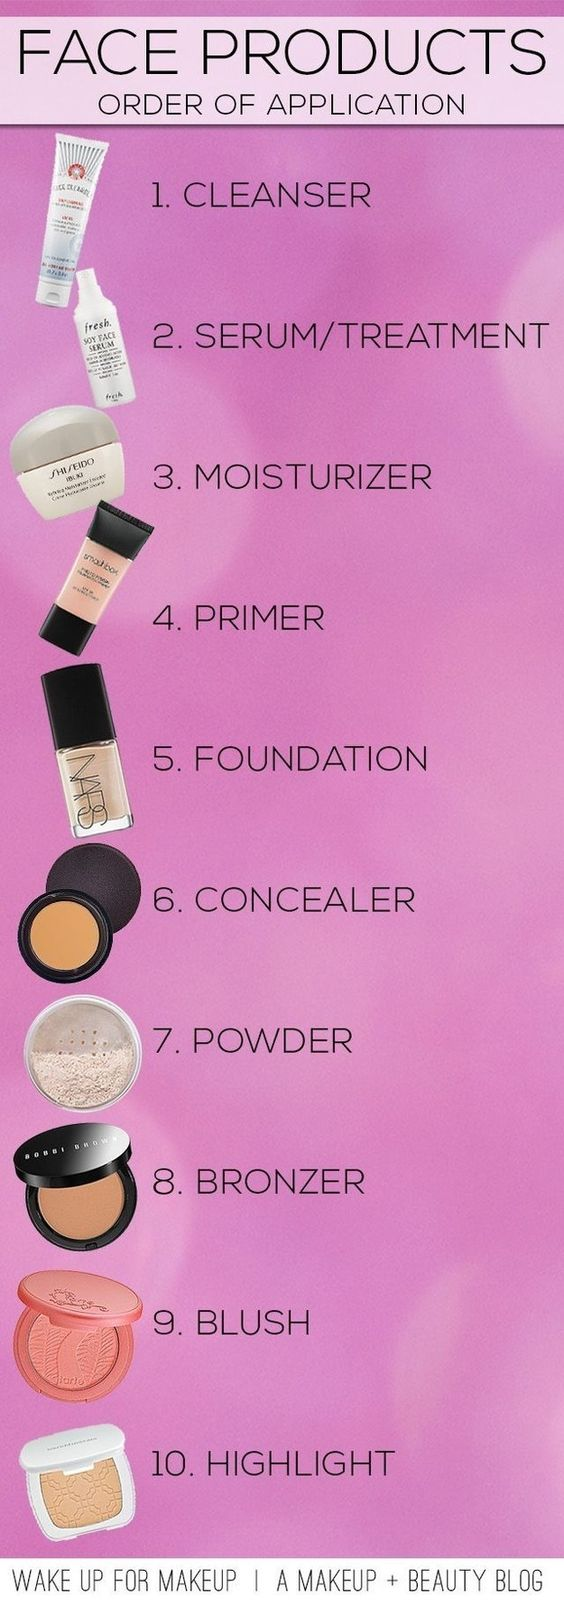 makeup chart face products popxo